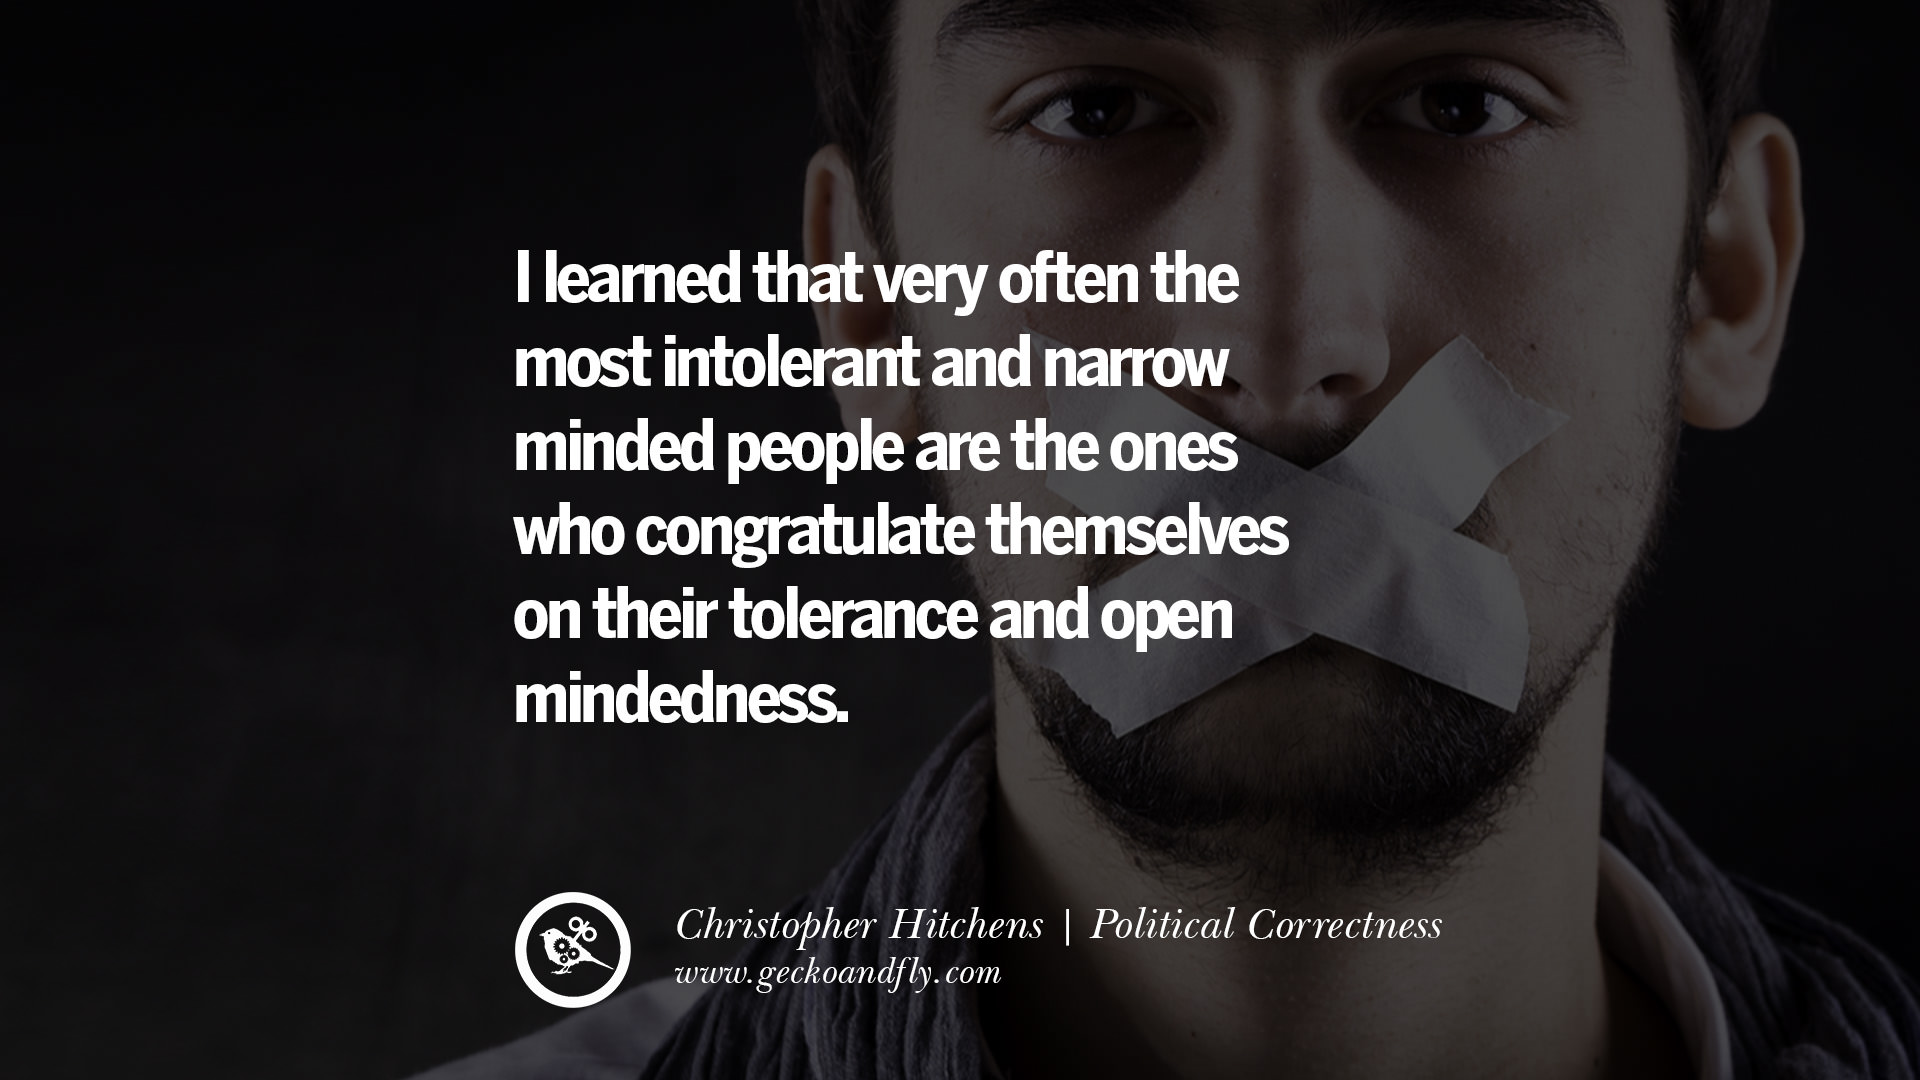 26 Anti Political Correctness Quotes And The Negative Effects On Society